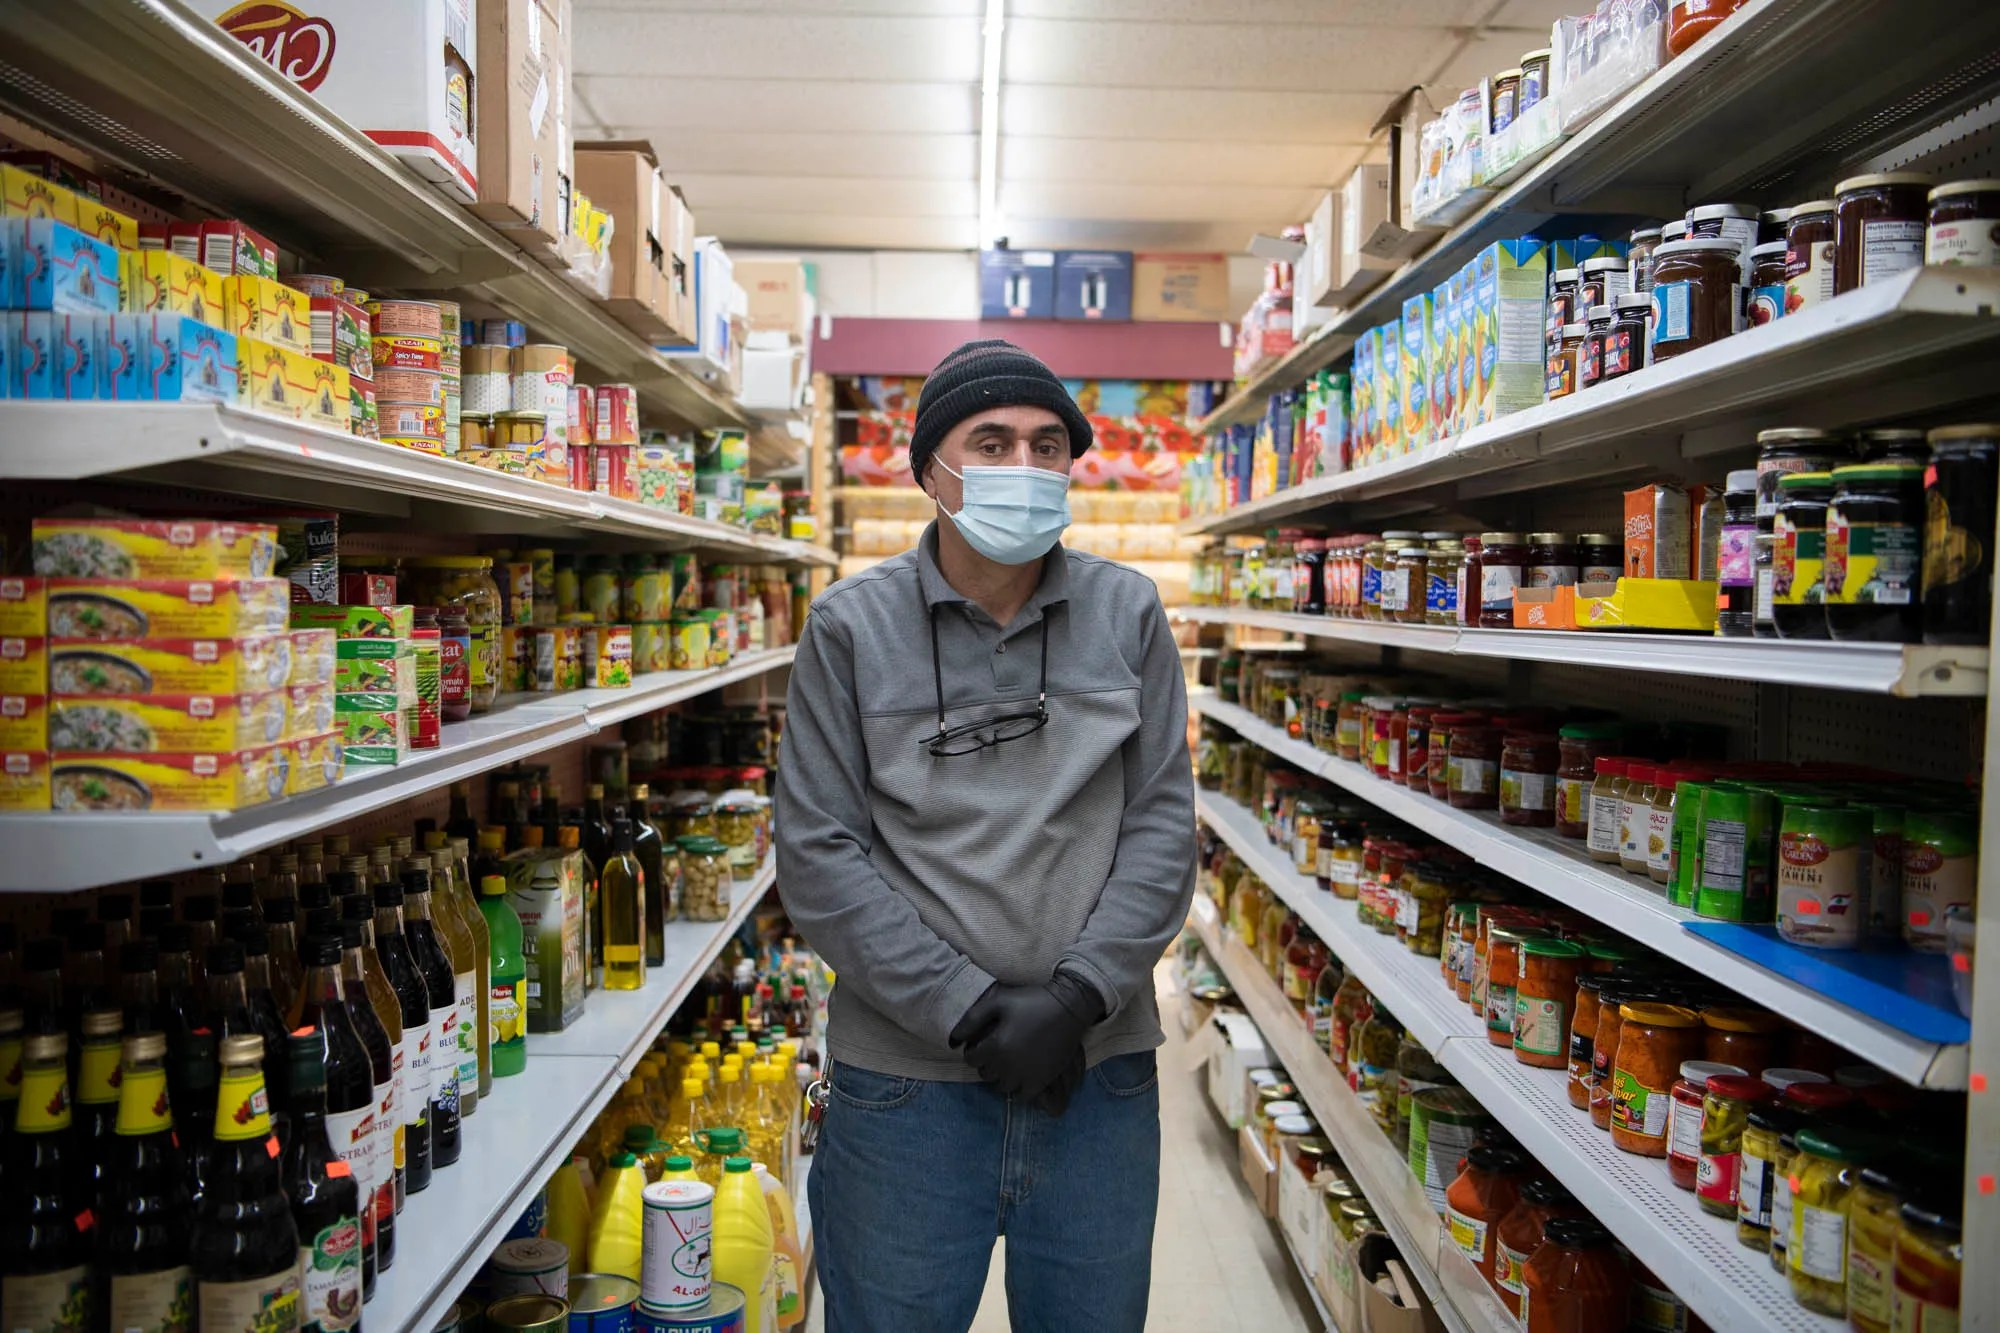 Wisam Asal, 53, is the co-owner of Jasmine International Store, a grocery store in Bowling Green, Ky. Asal came to Kentucky from Iraq as a refugee with his family back in 2010.